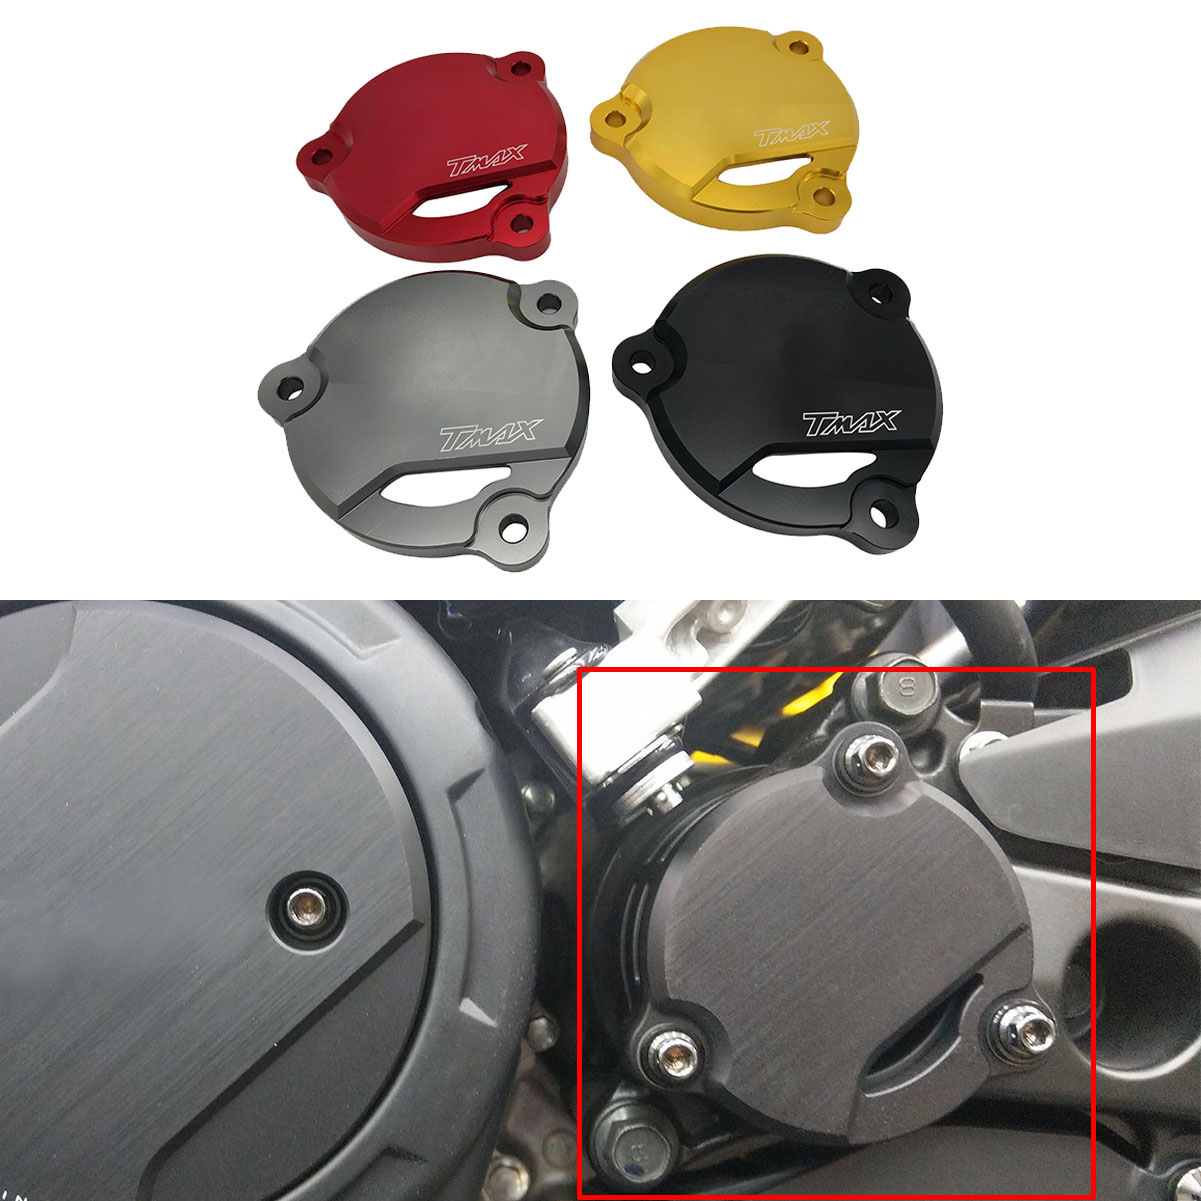 TMAX 530 Motorcycle For Yamaha TMAX530 2012-2019 2020 Near Engine Protective Decoration Shaft Cover Guard T MAX 530 Accessories